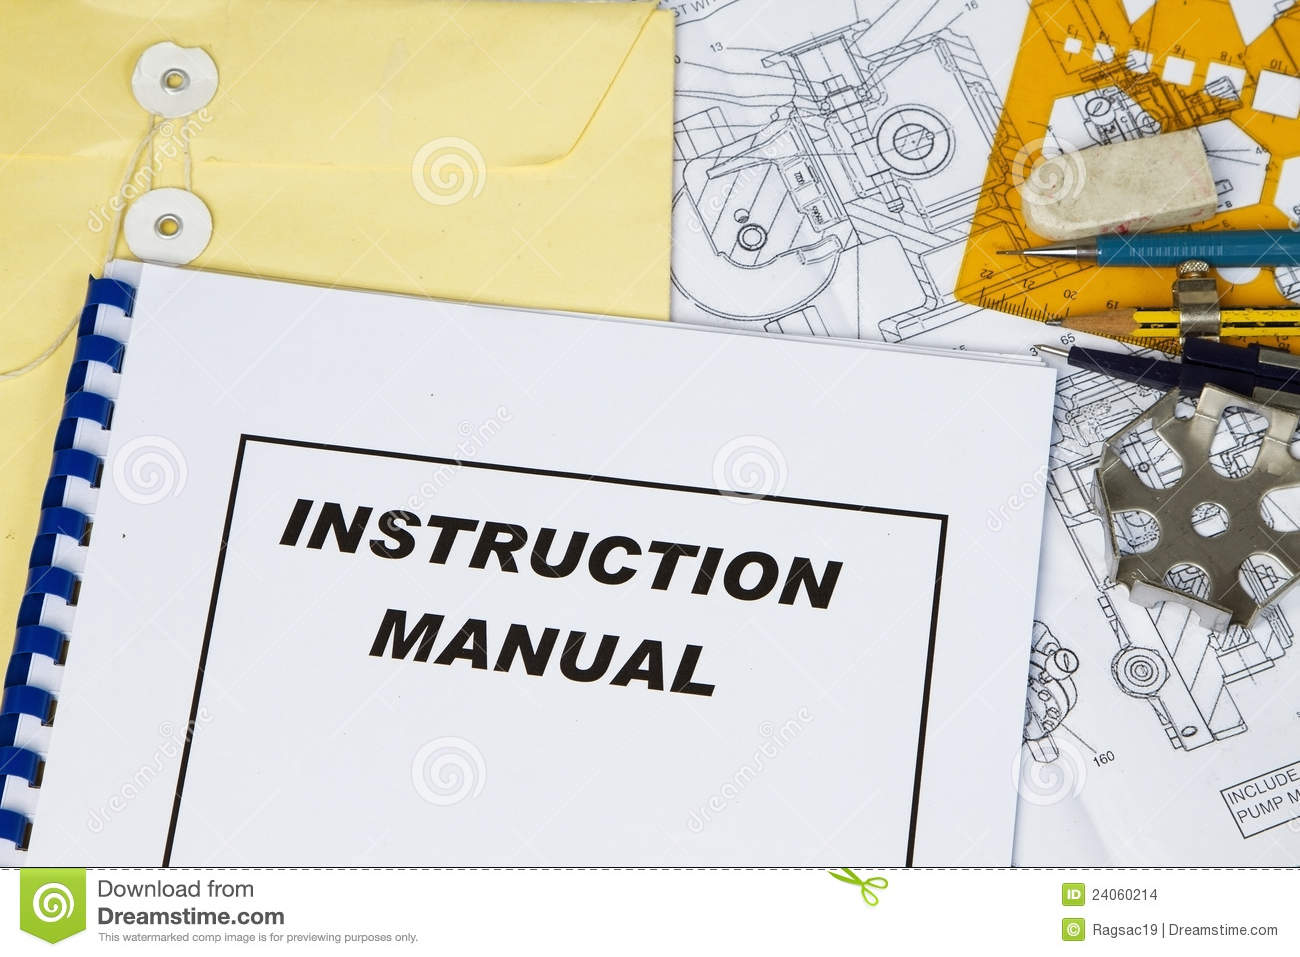 Is This Appropriate Manual Guide